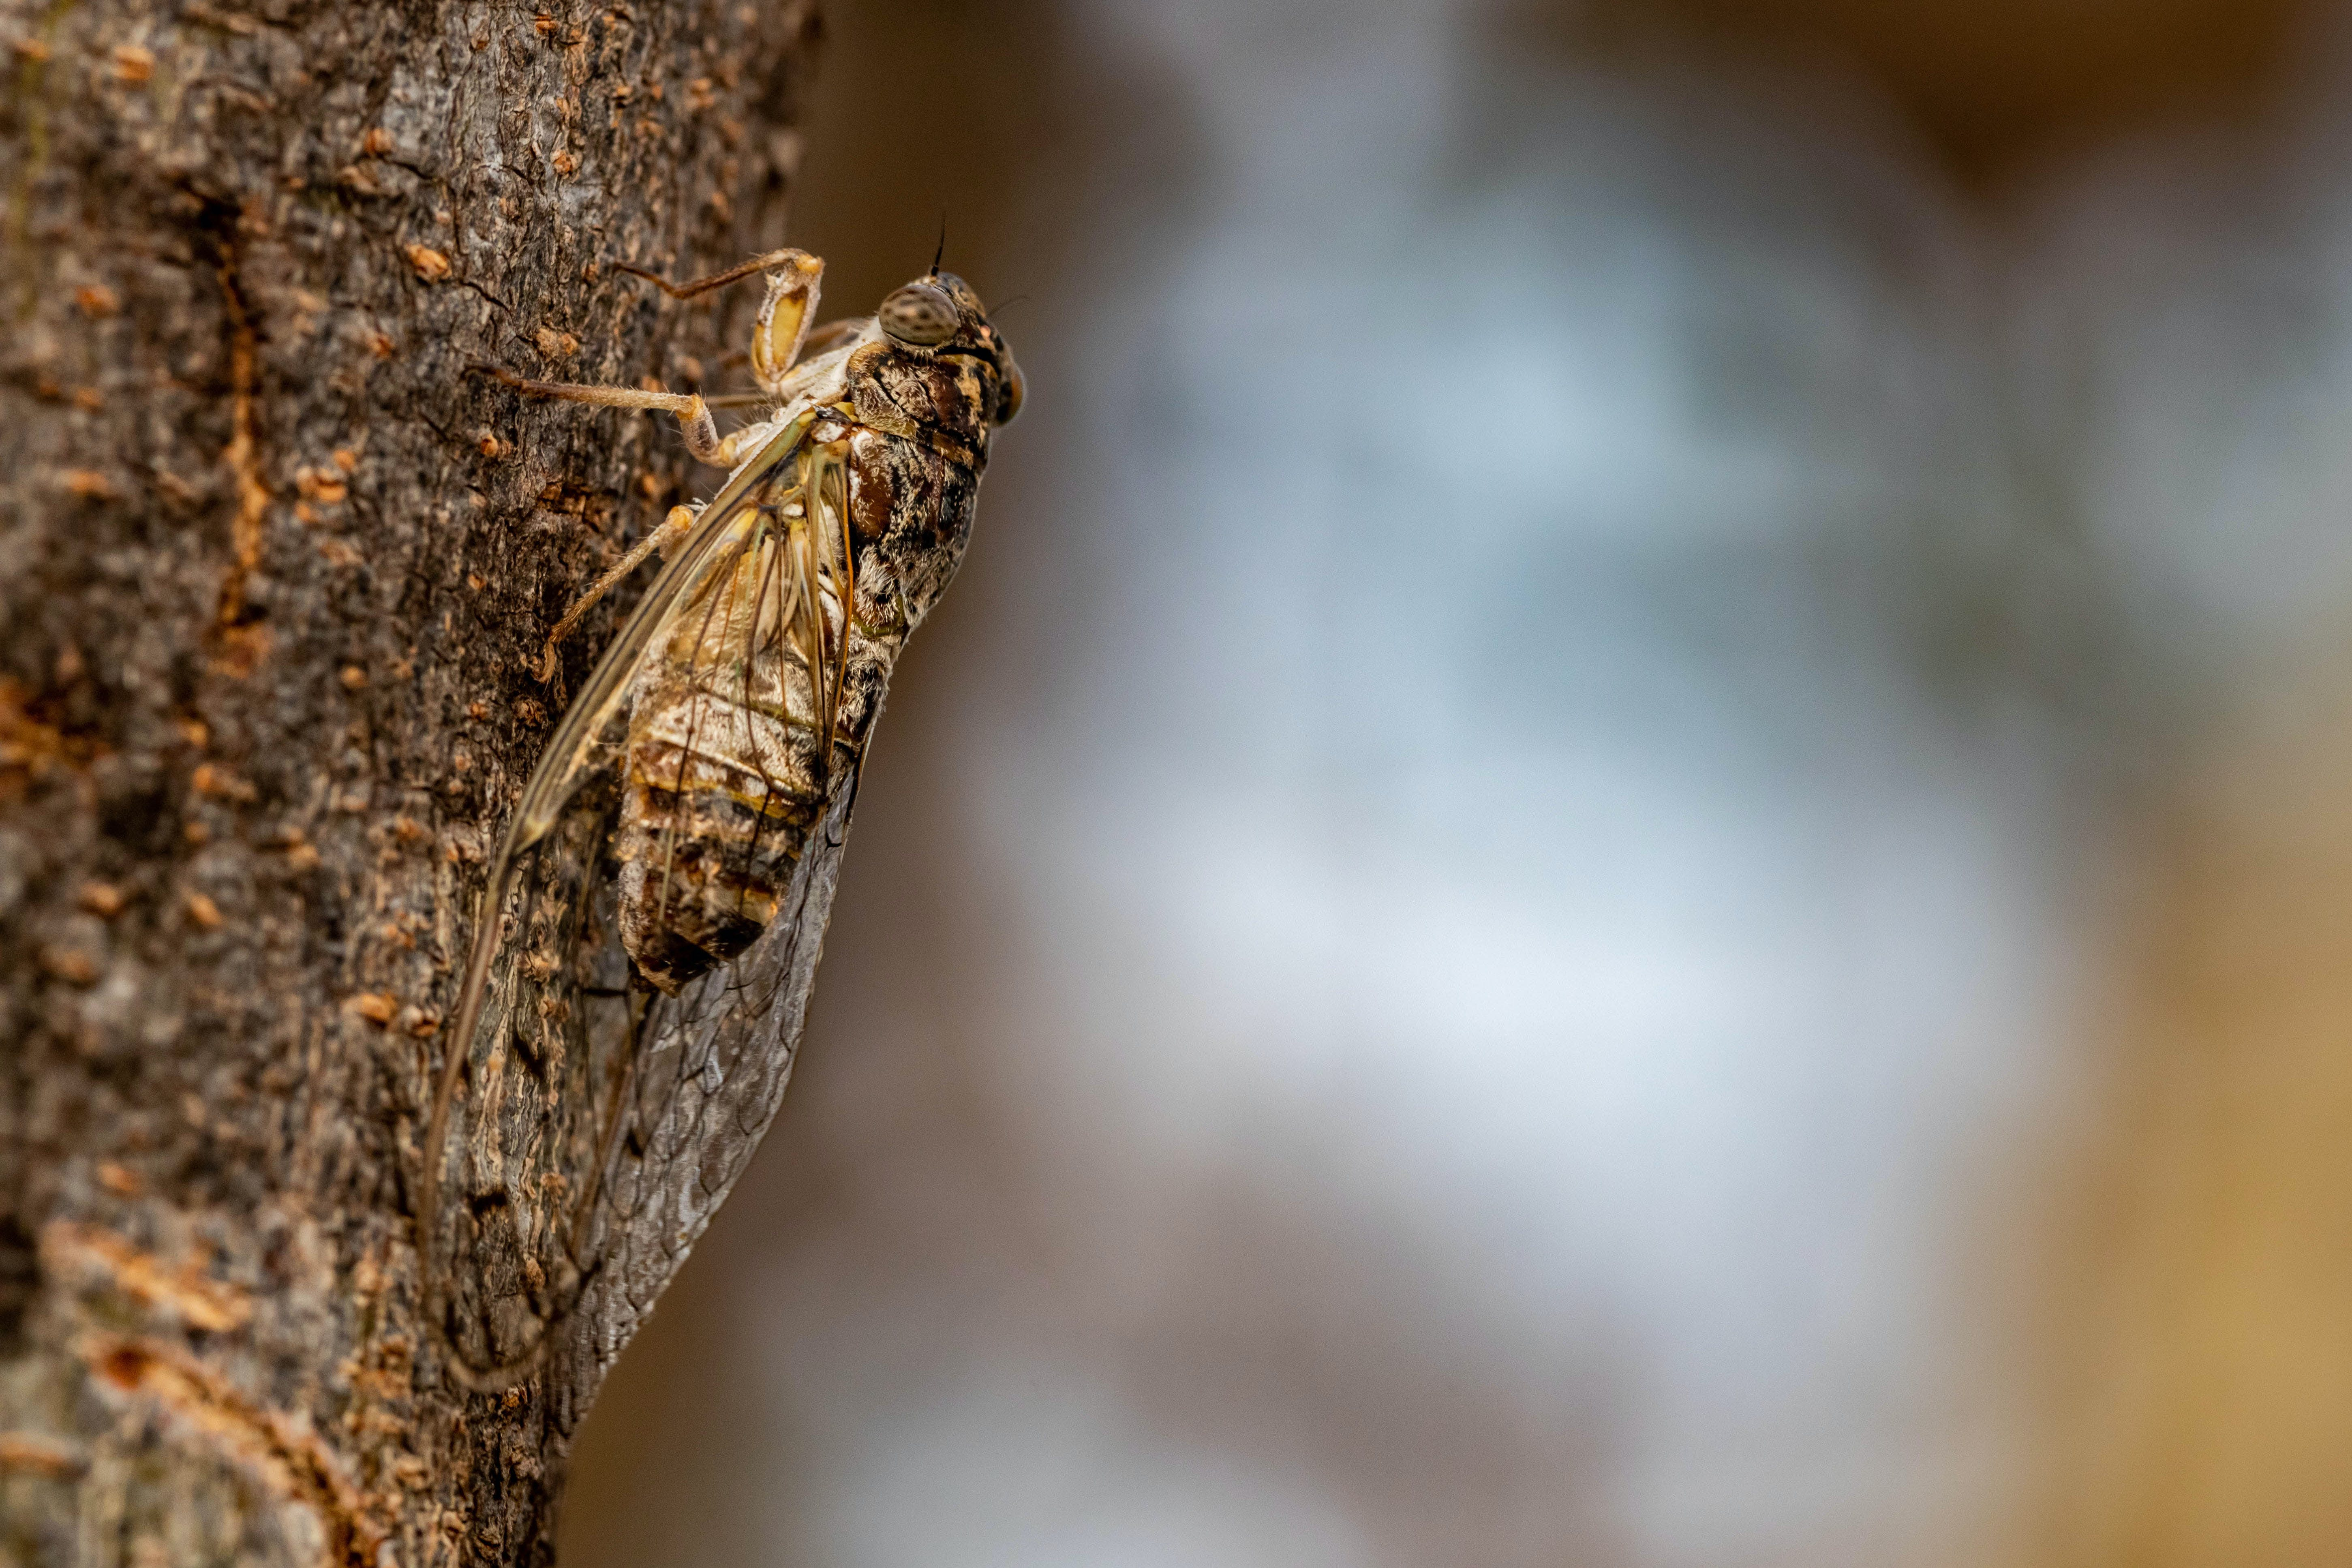 Free stock photo of chicarra, cicadidae, cigarra, insect